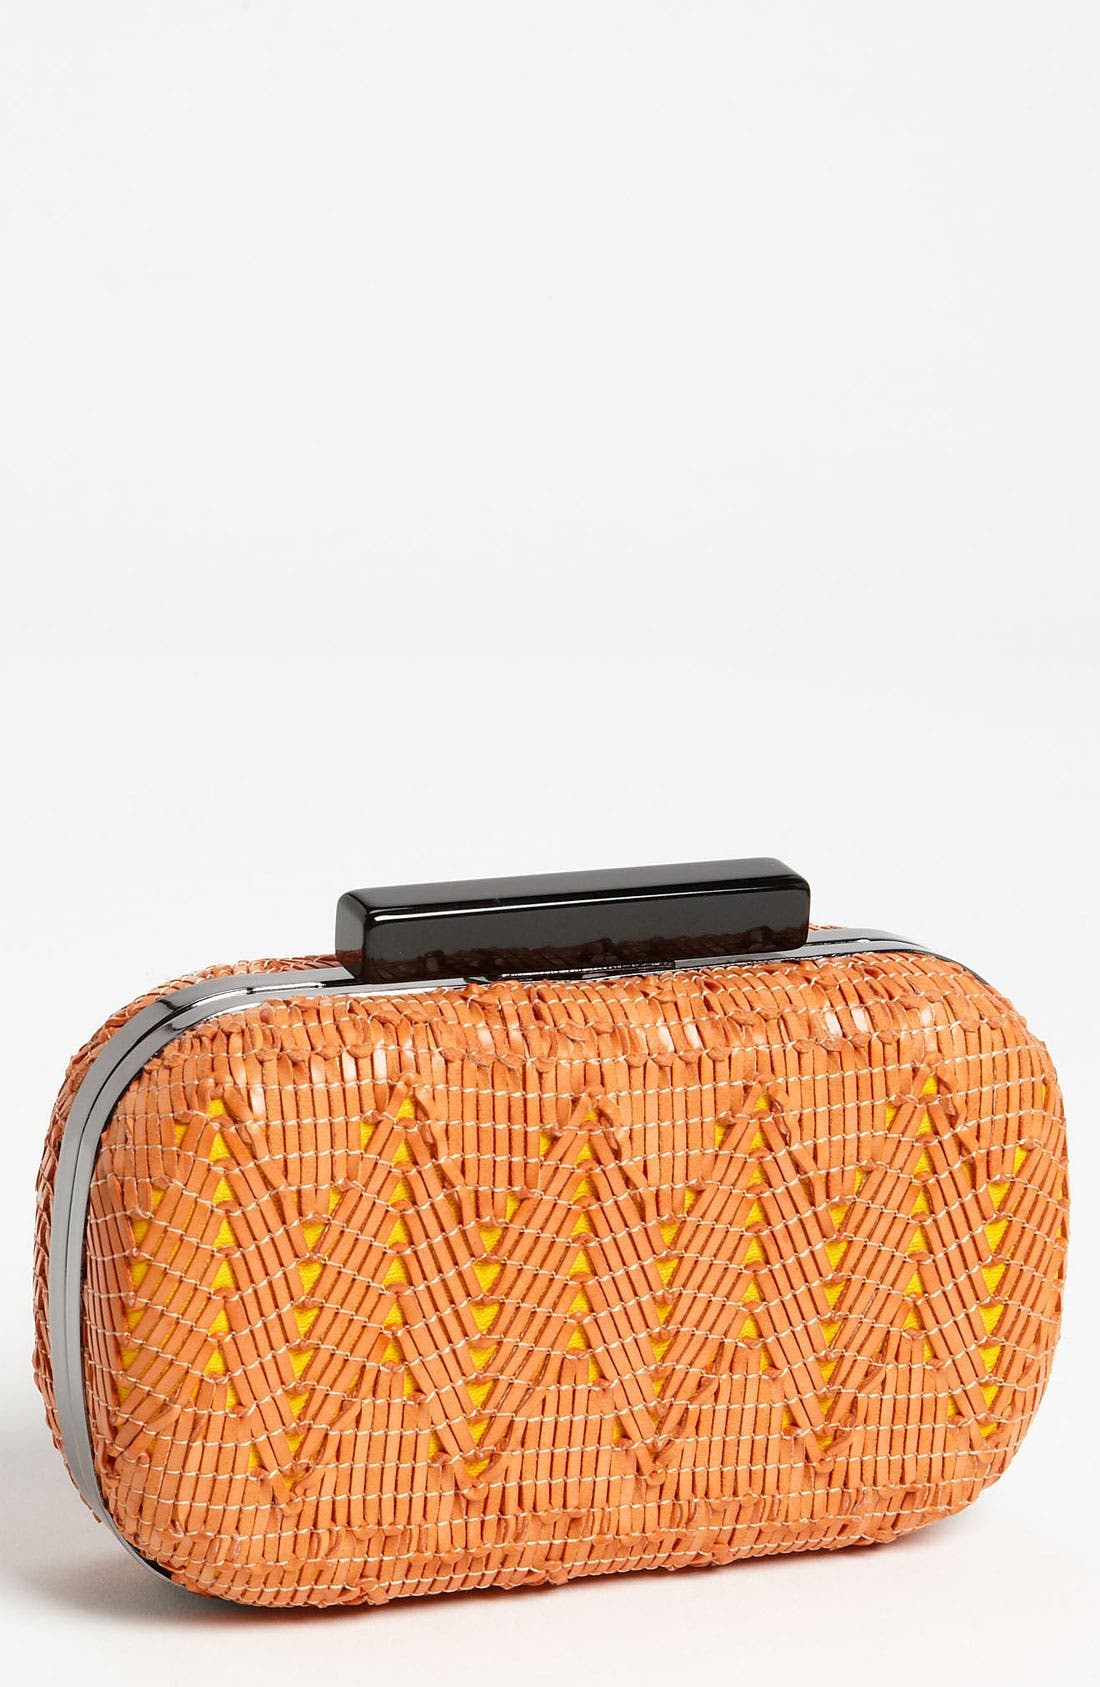 Alternate Image 1 Selected - Natasha Couture 'Basket Case' Clutch